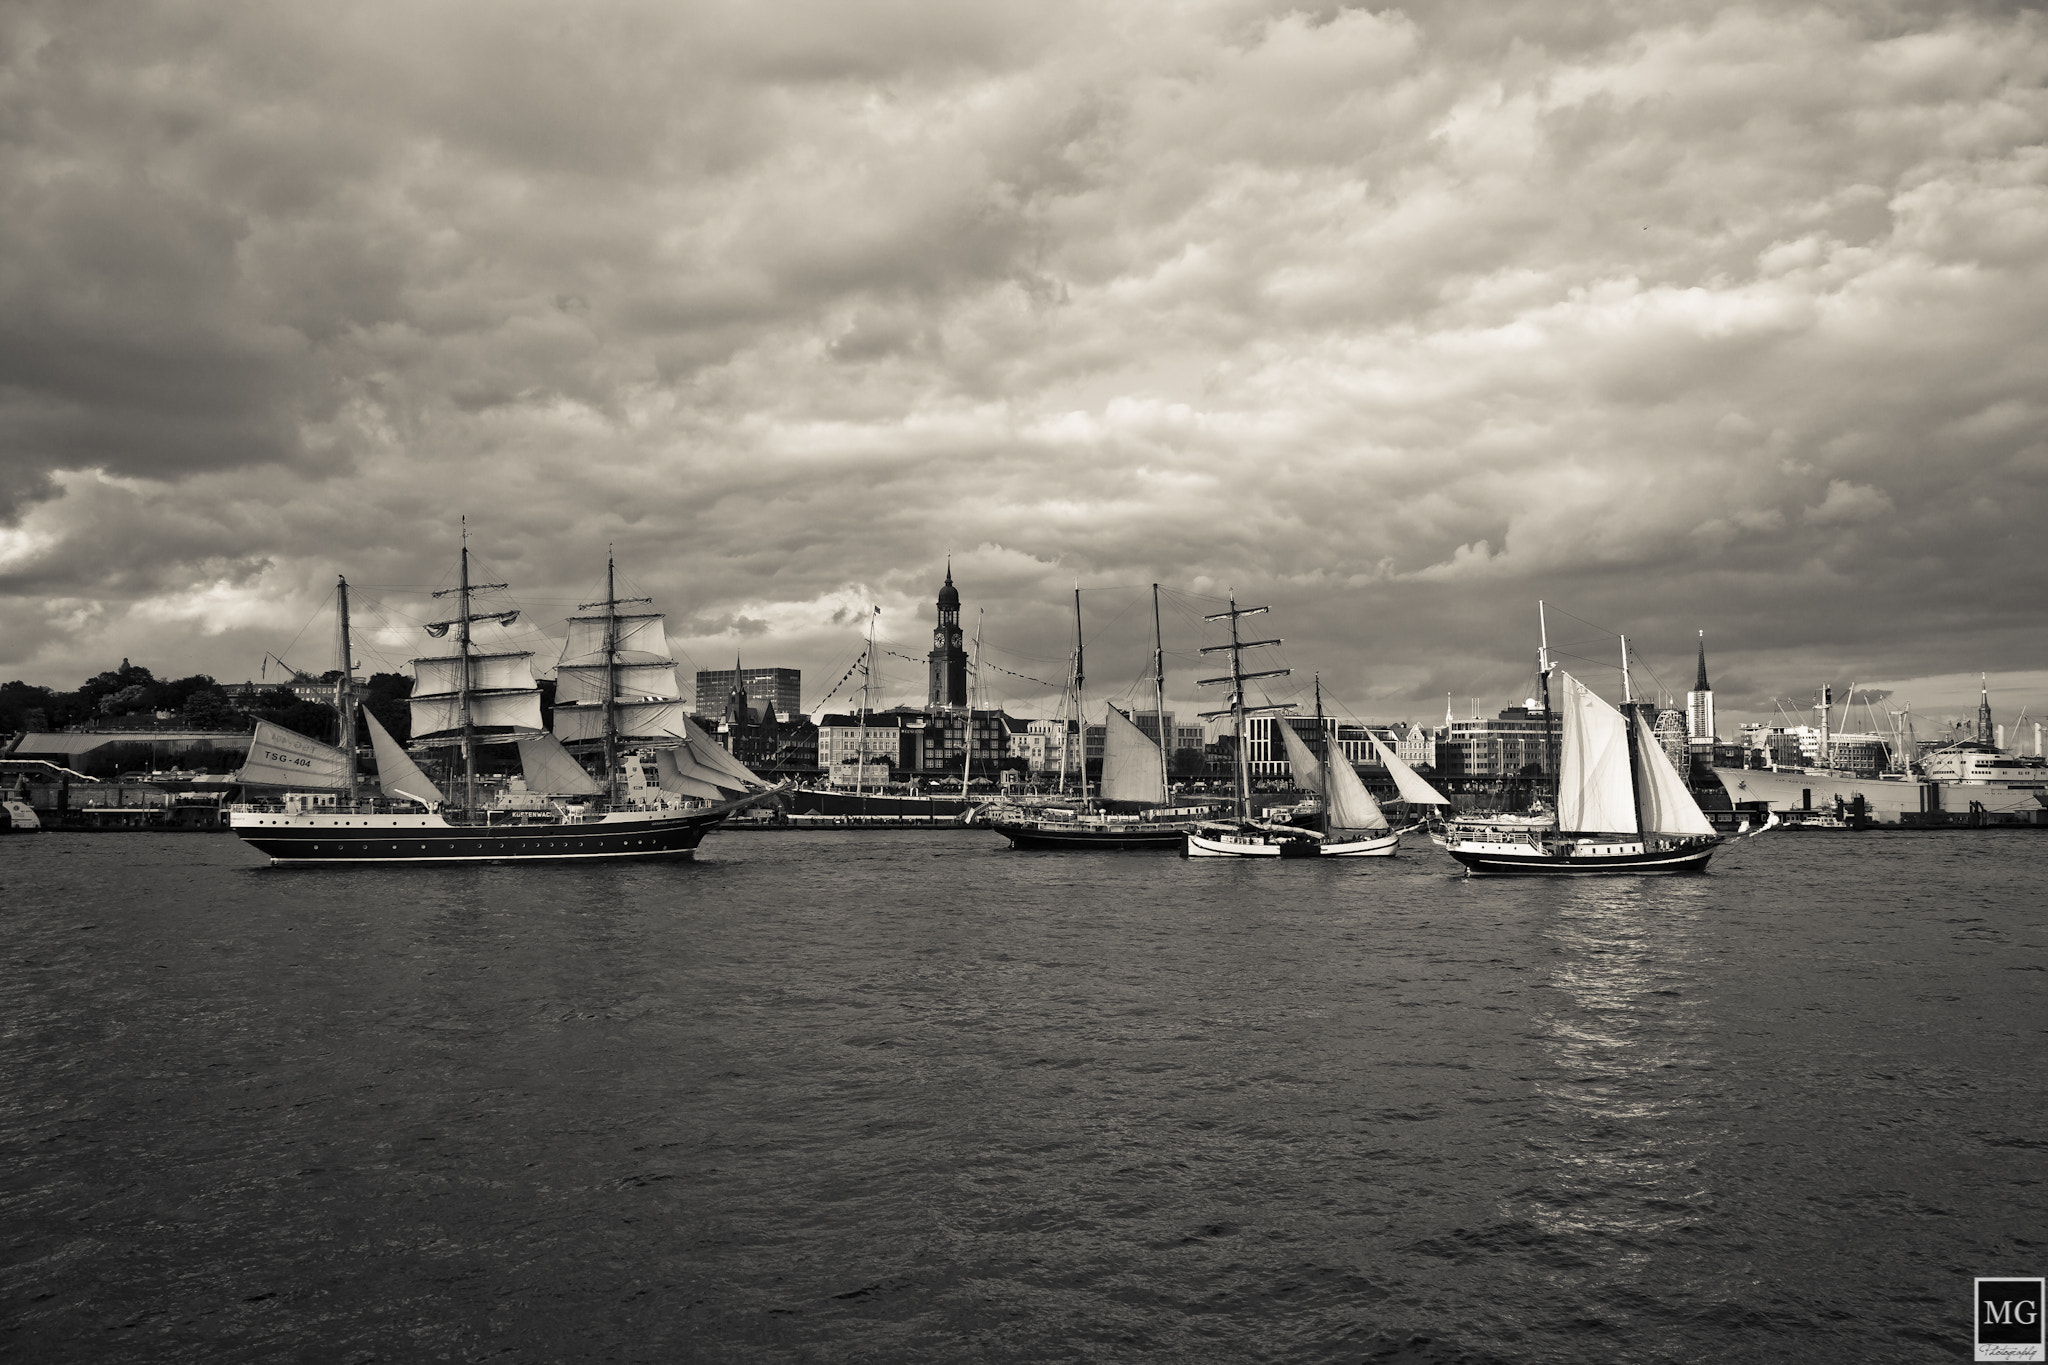 Photograph Clouds´n Ships by Marco Guerreiro on 500px